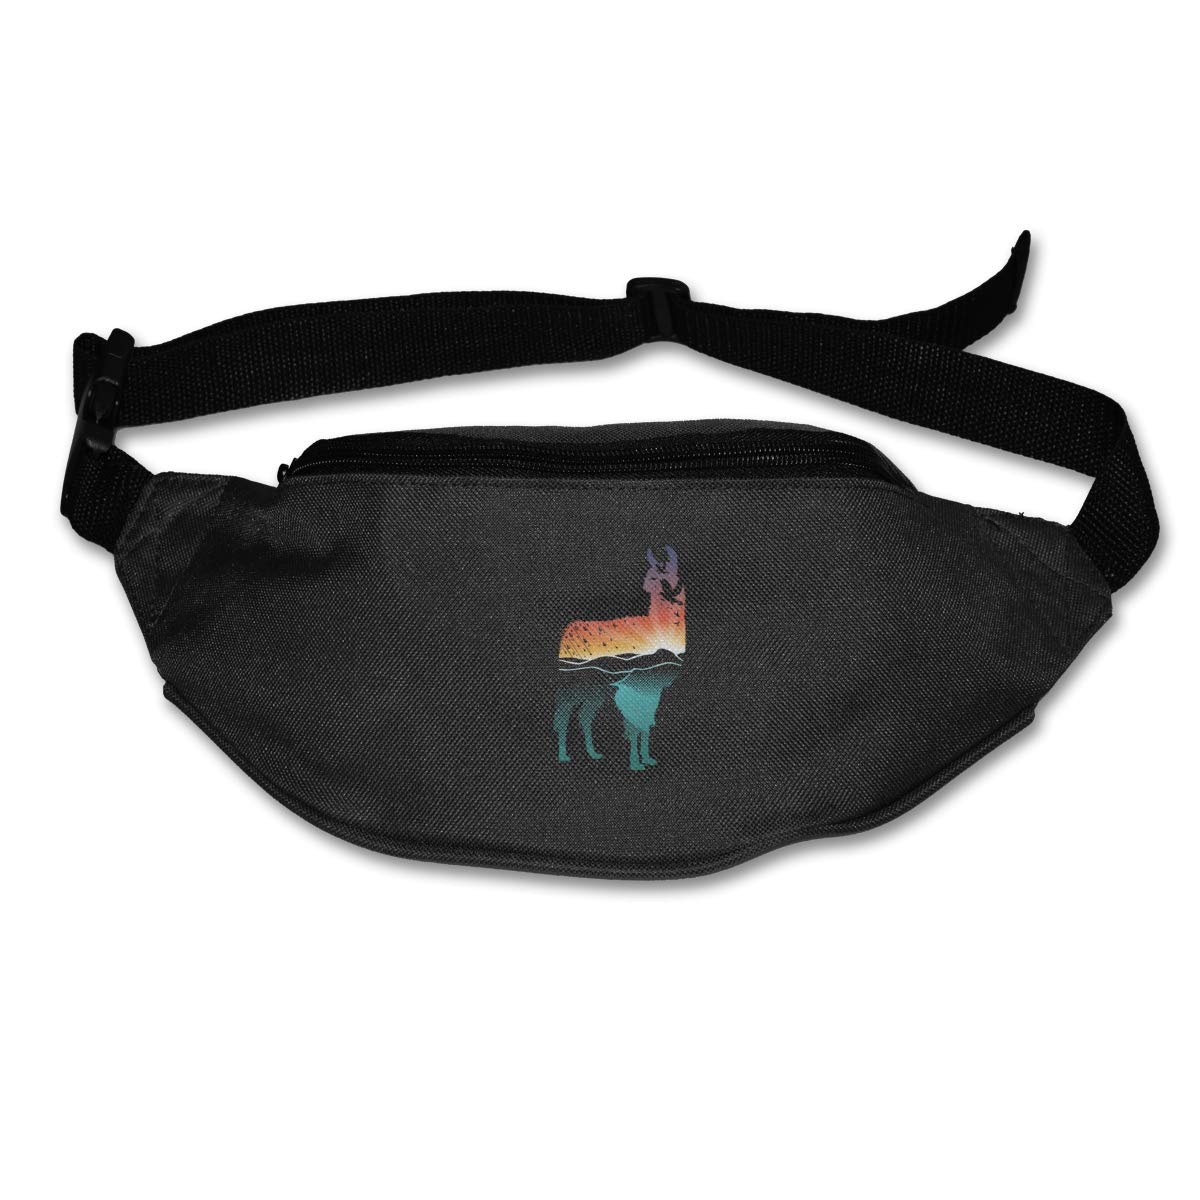 Sunset Llama Sport Waist Packs Fanny Pack Adjustable For Hike